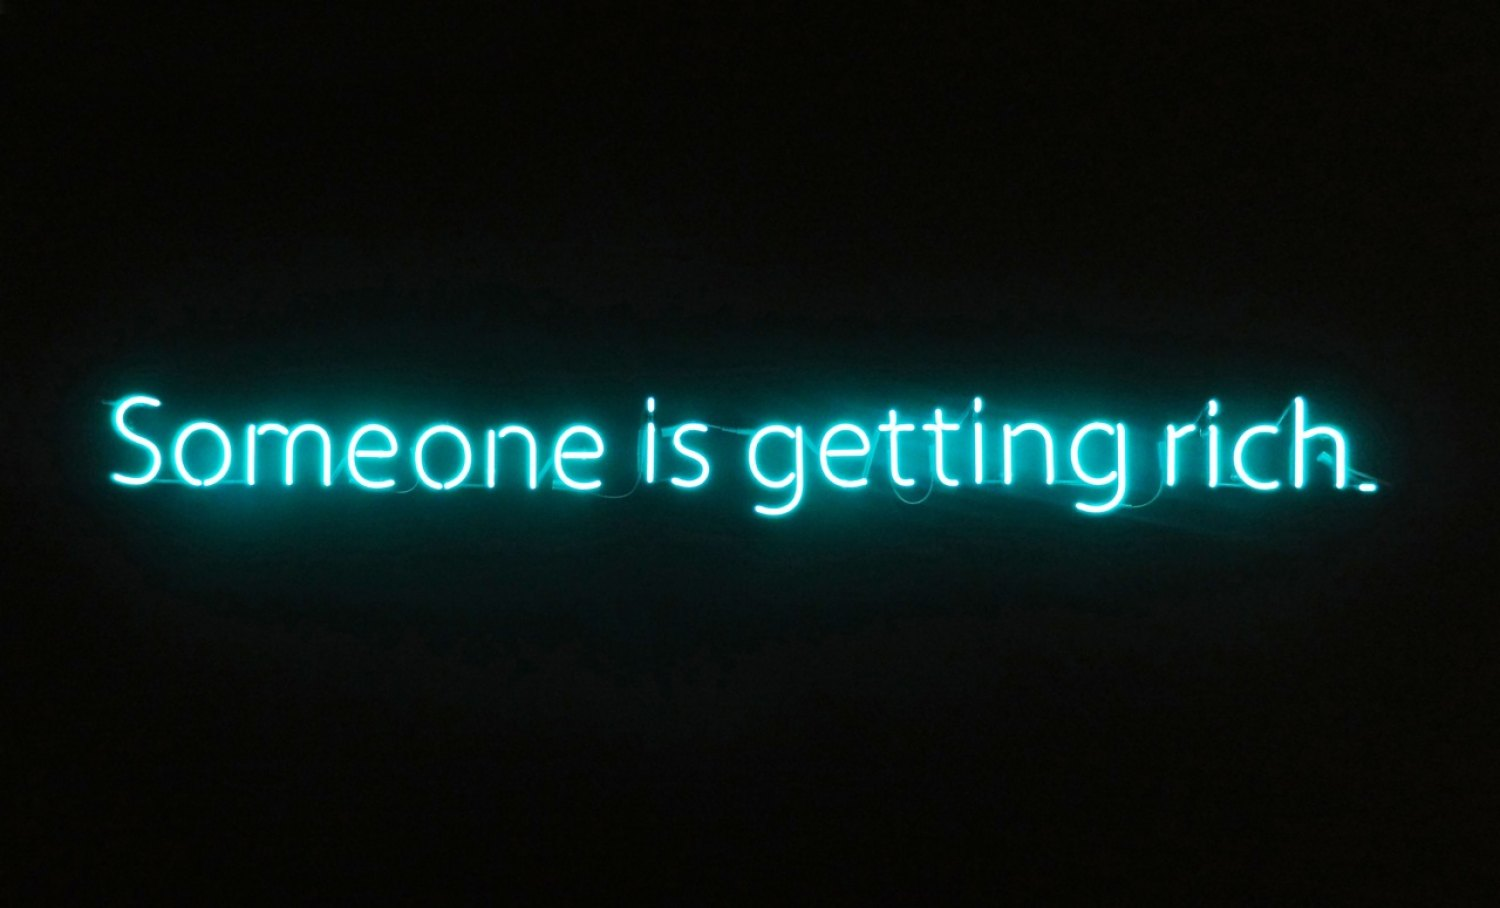 Claire Fontaine  Untitled (Someone is getting rich), 2012 Tecnolux No.9 Super Turquoise, 10mm glass, mounted to black painted wall, window or ceiling, 15 × 223 × 4 cm